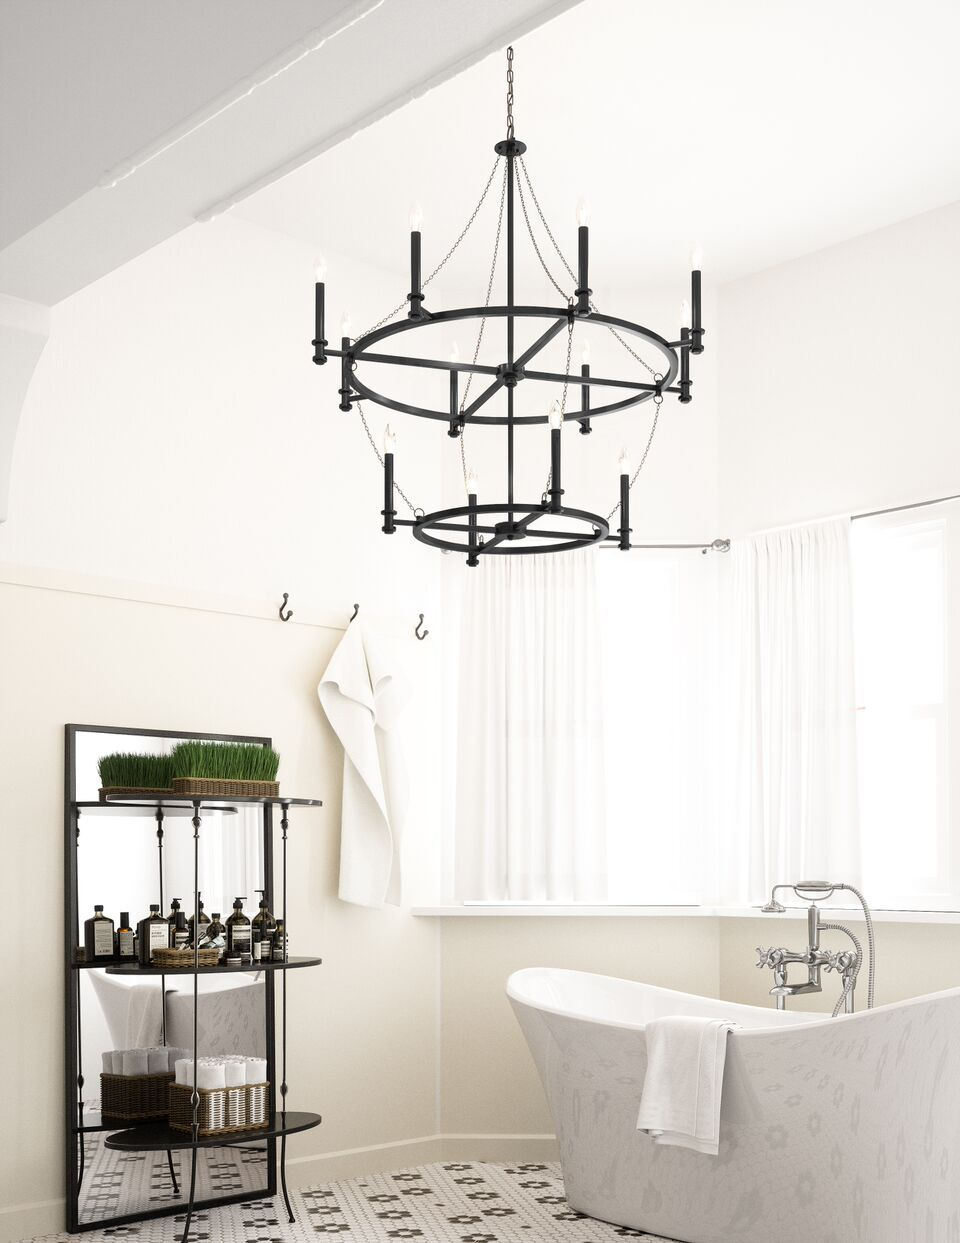 This coastal / Hamptonsstyle pendant light features a